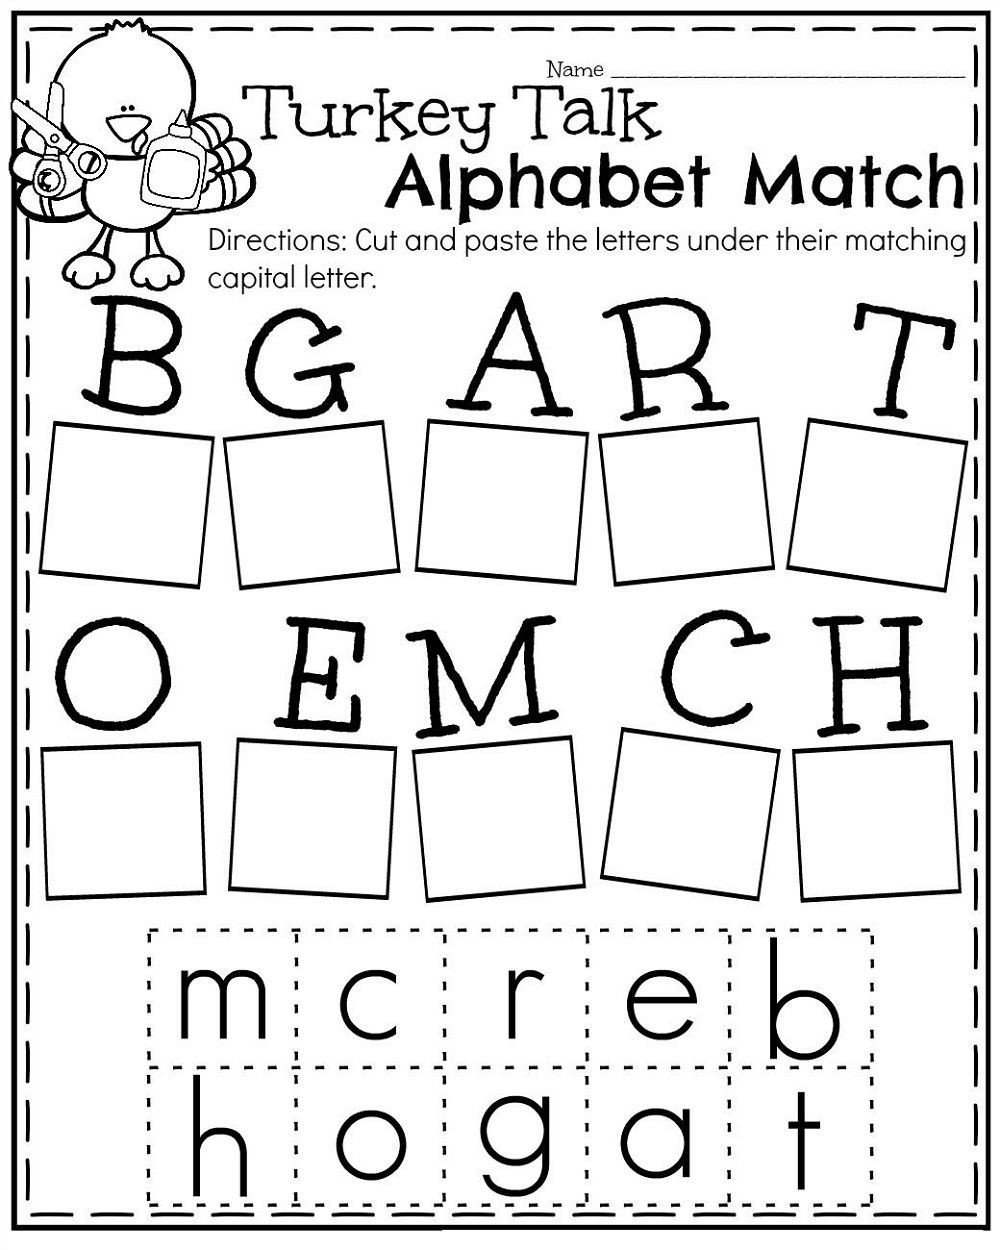 Free Cut and Paste Worksheets Practice Writing Lowercase Letter Worksheets